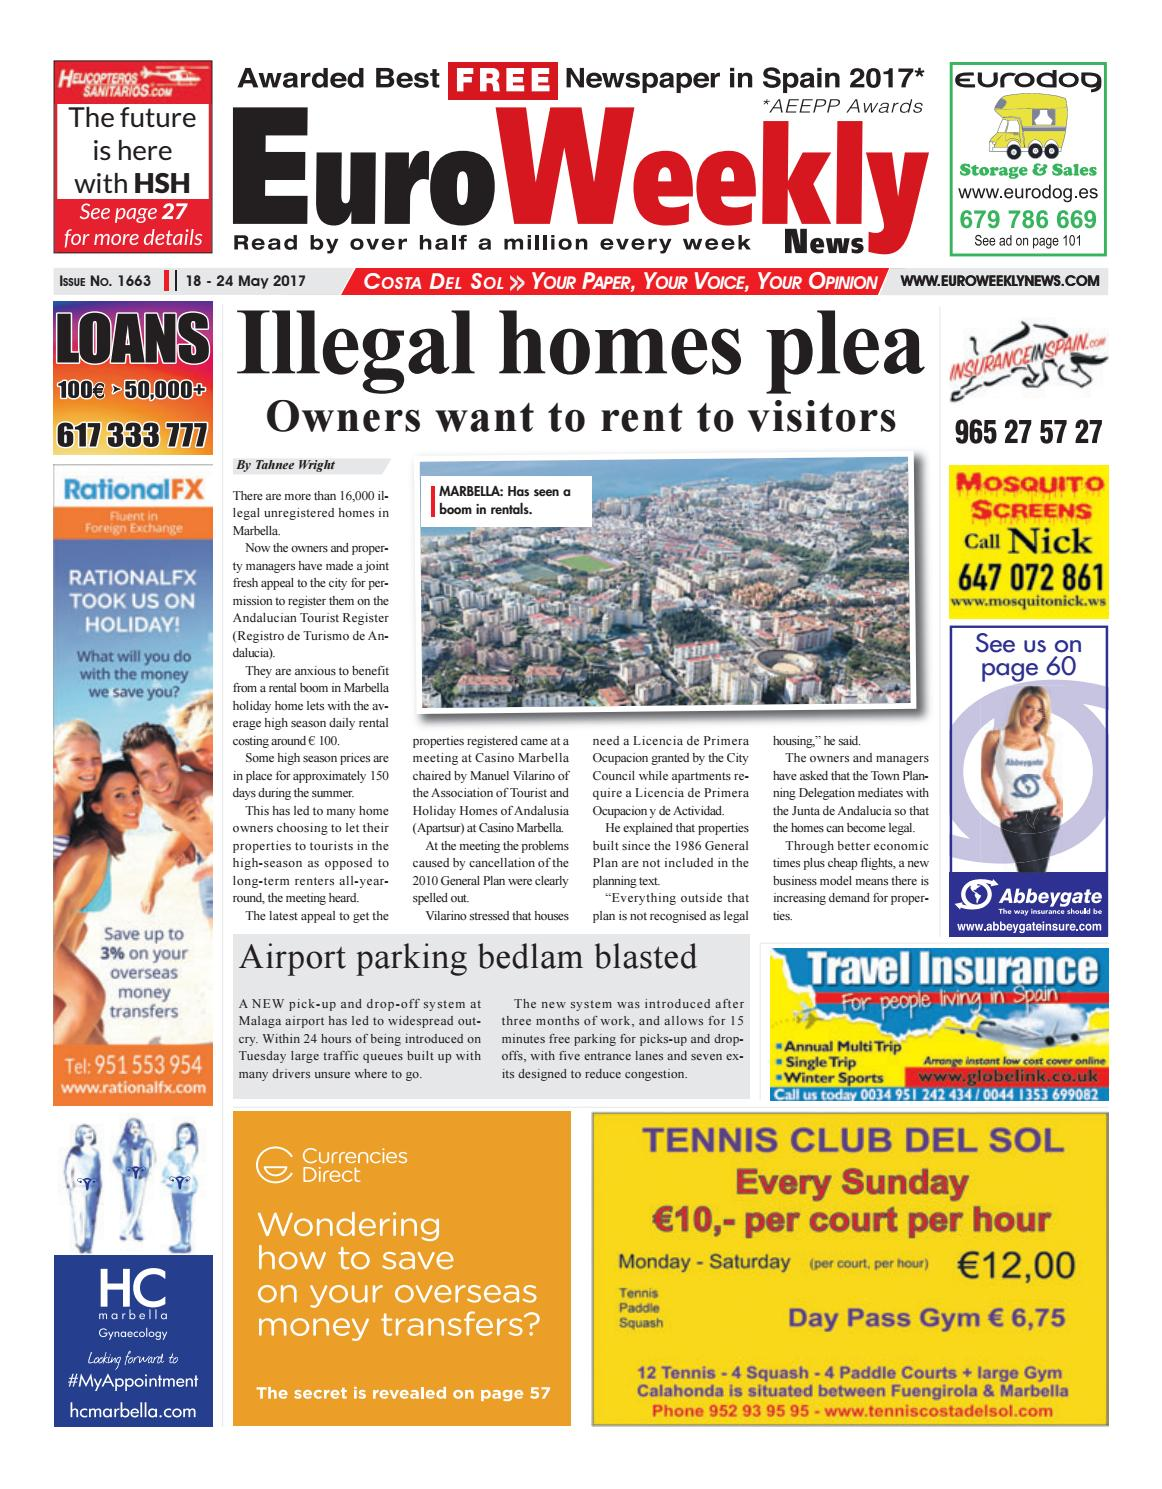 Euro weekly news costa del sol 18 24 may 2017 issue 1663 by euro euro weekly news costa del sol 18 24 may 2017 issue 1663 by euro weekly news media sa issuu fandeluxe Image collections